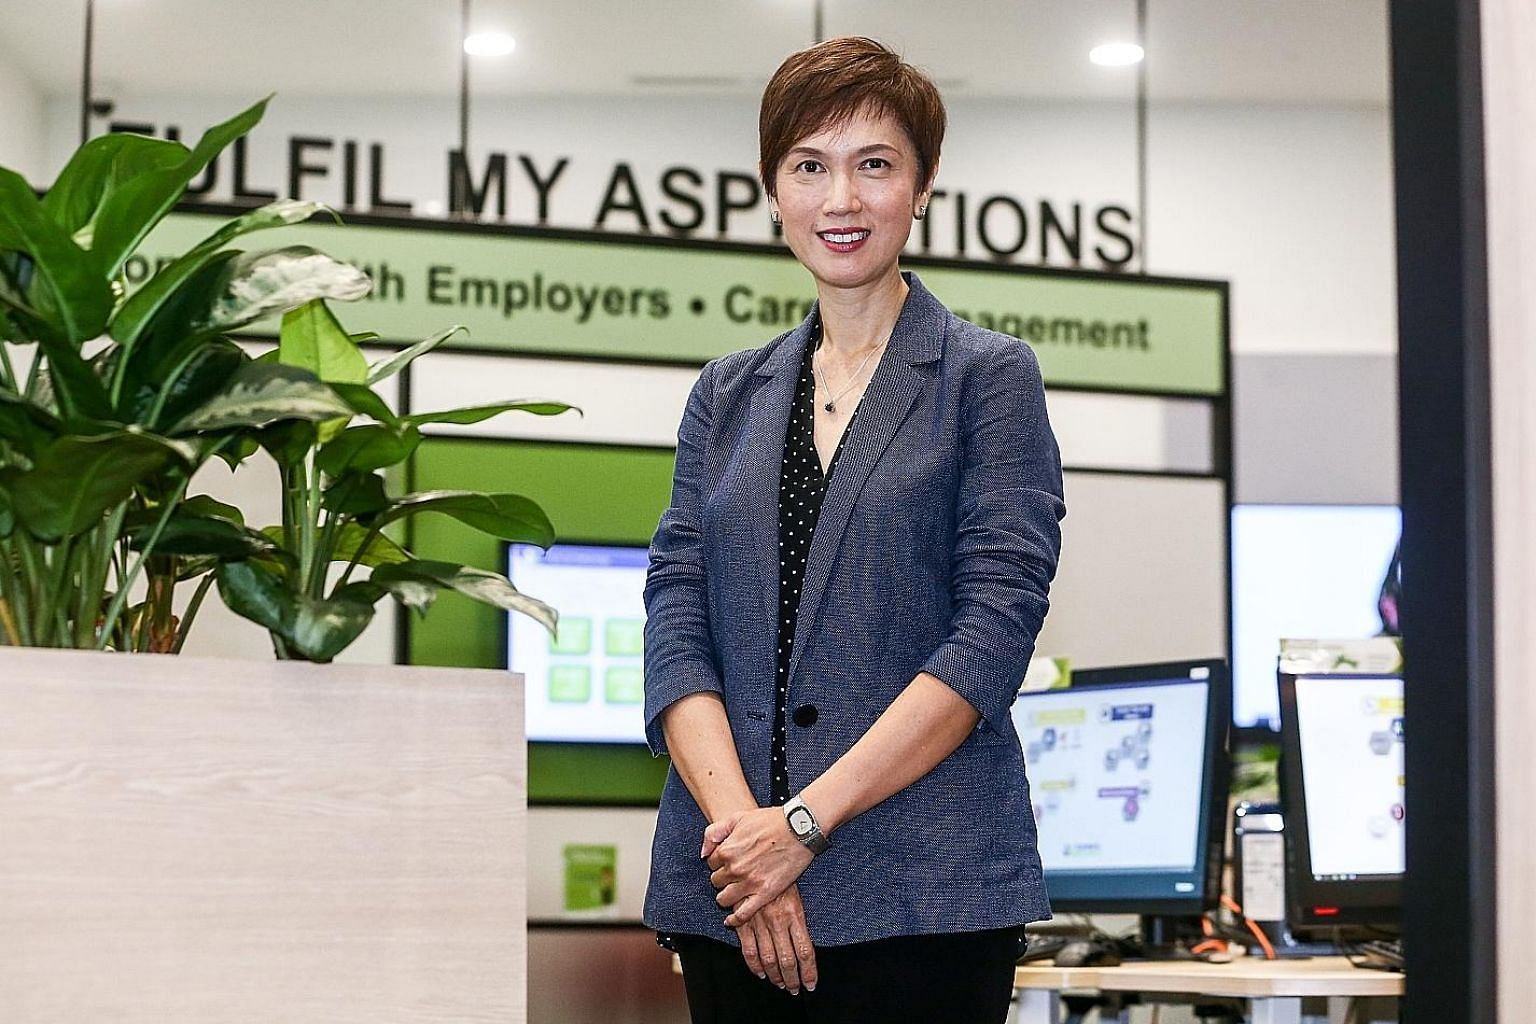 As Singaporeans are living longer, people will spend a longer time in retirement and so will need to save more during their working years, said Minister for Manpower Josephine Teo.